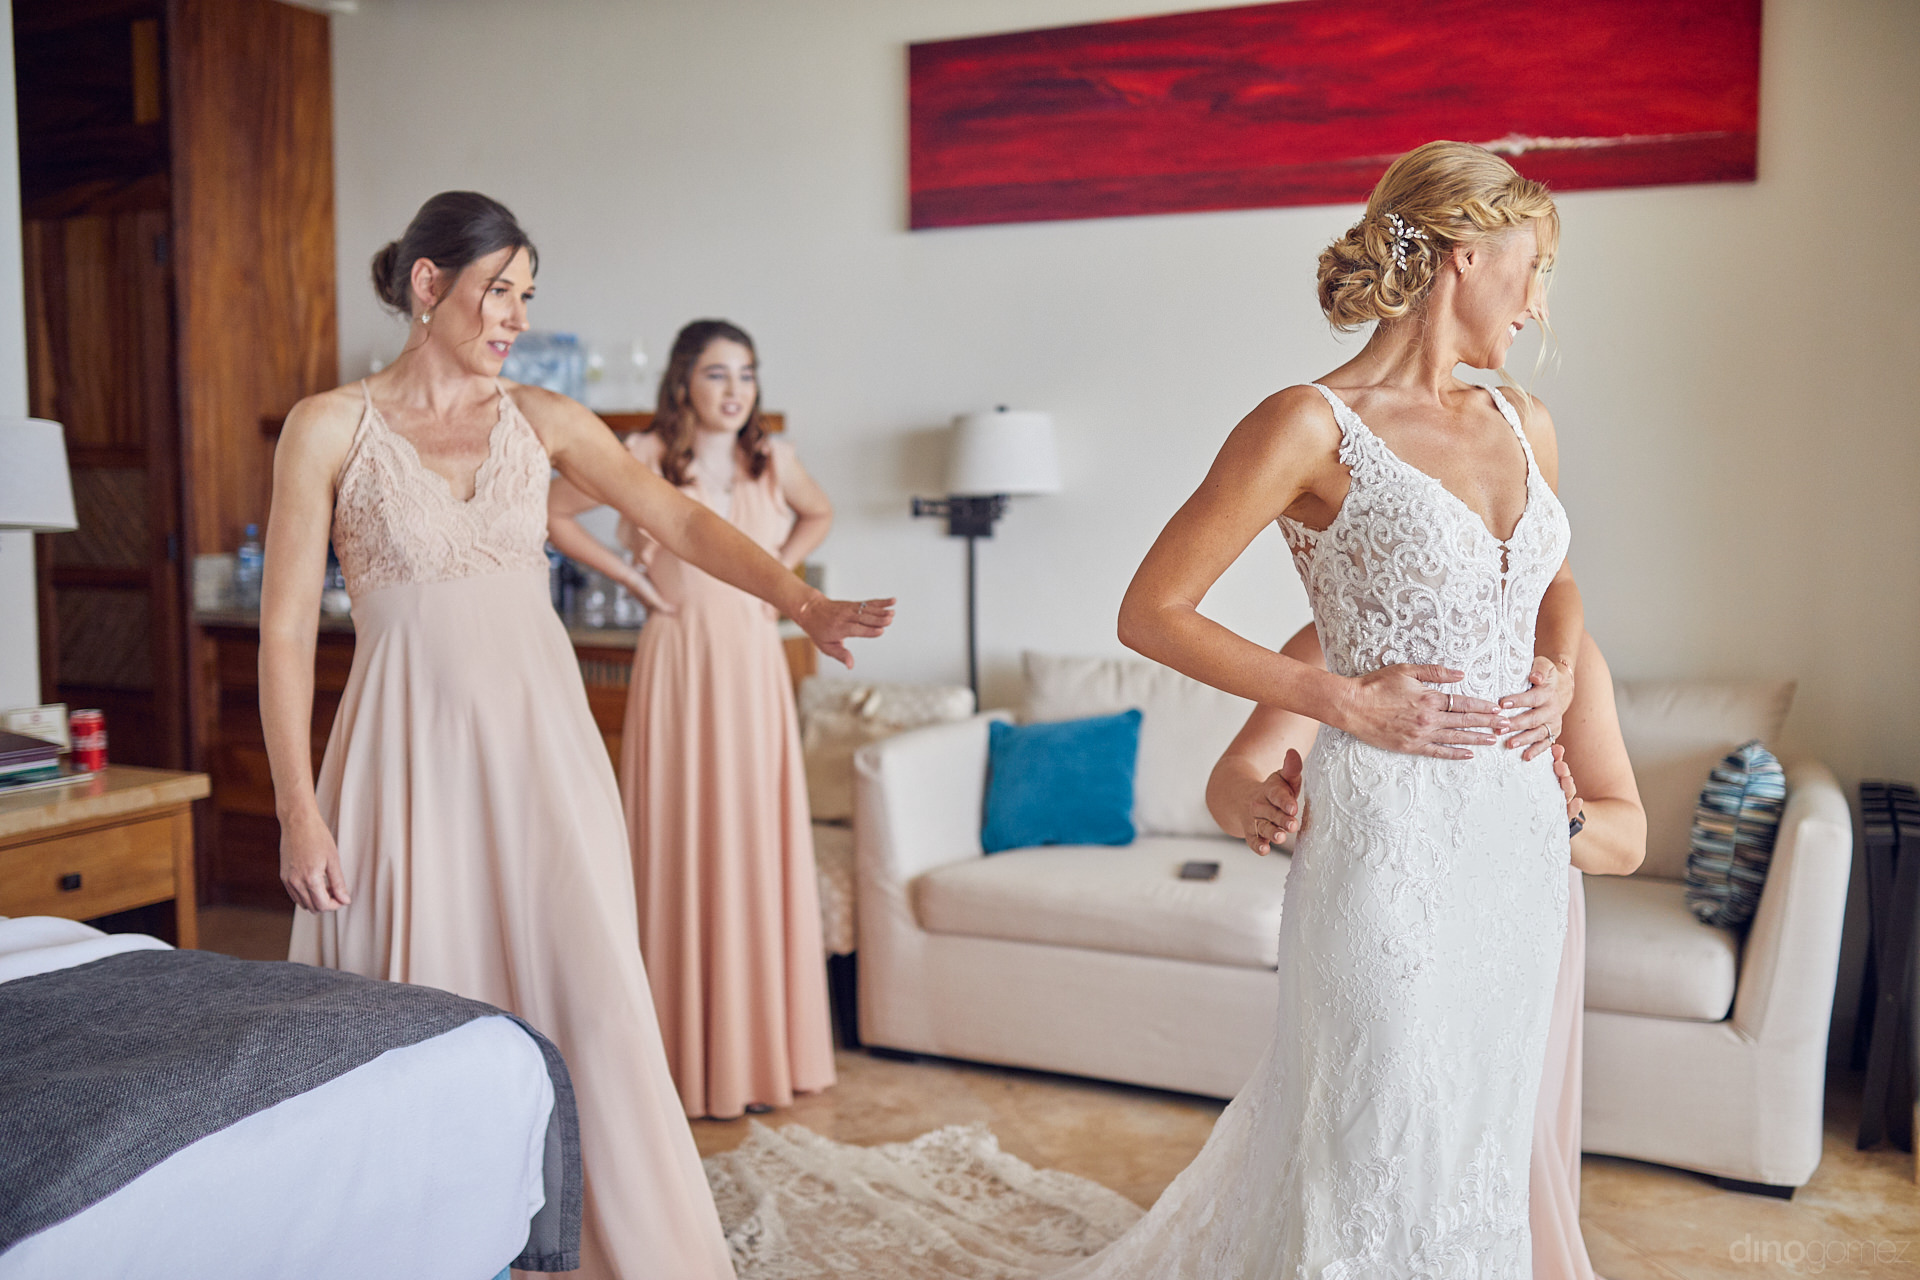 Cabo Photographer Specialized In Destination Weddings - Mm